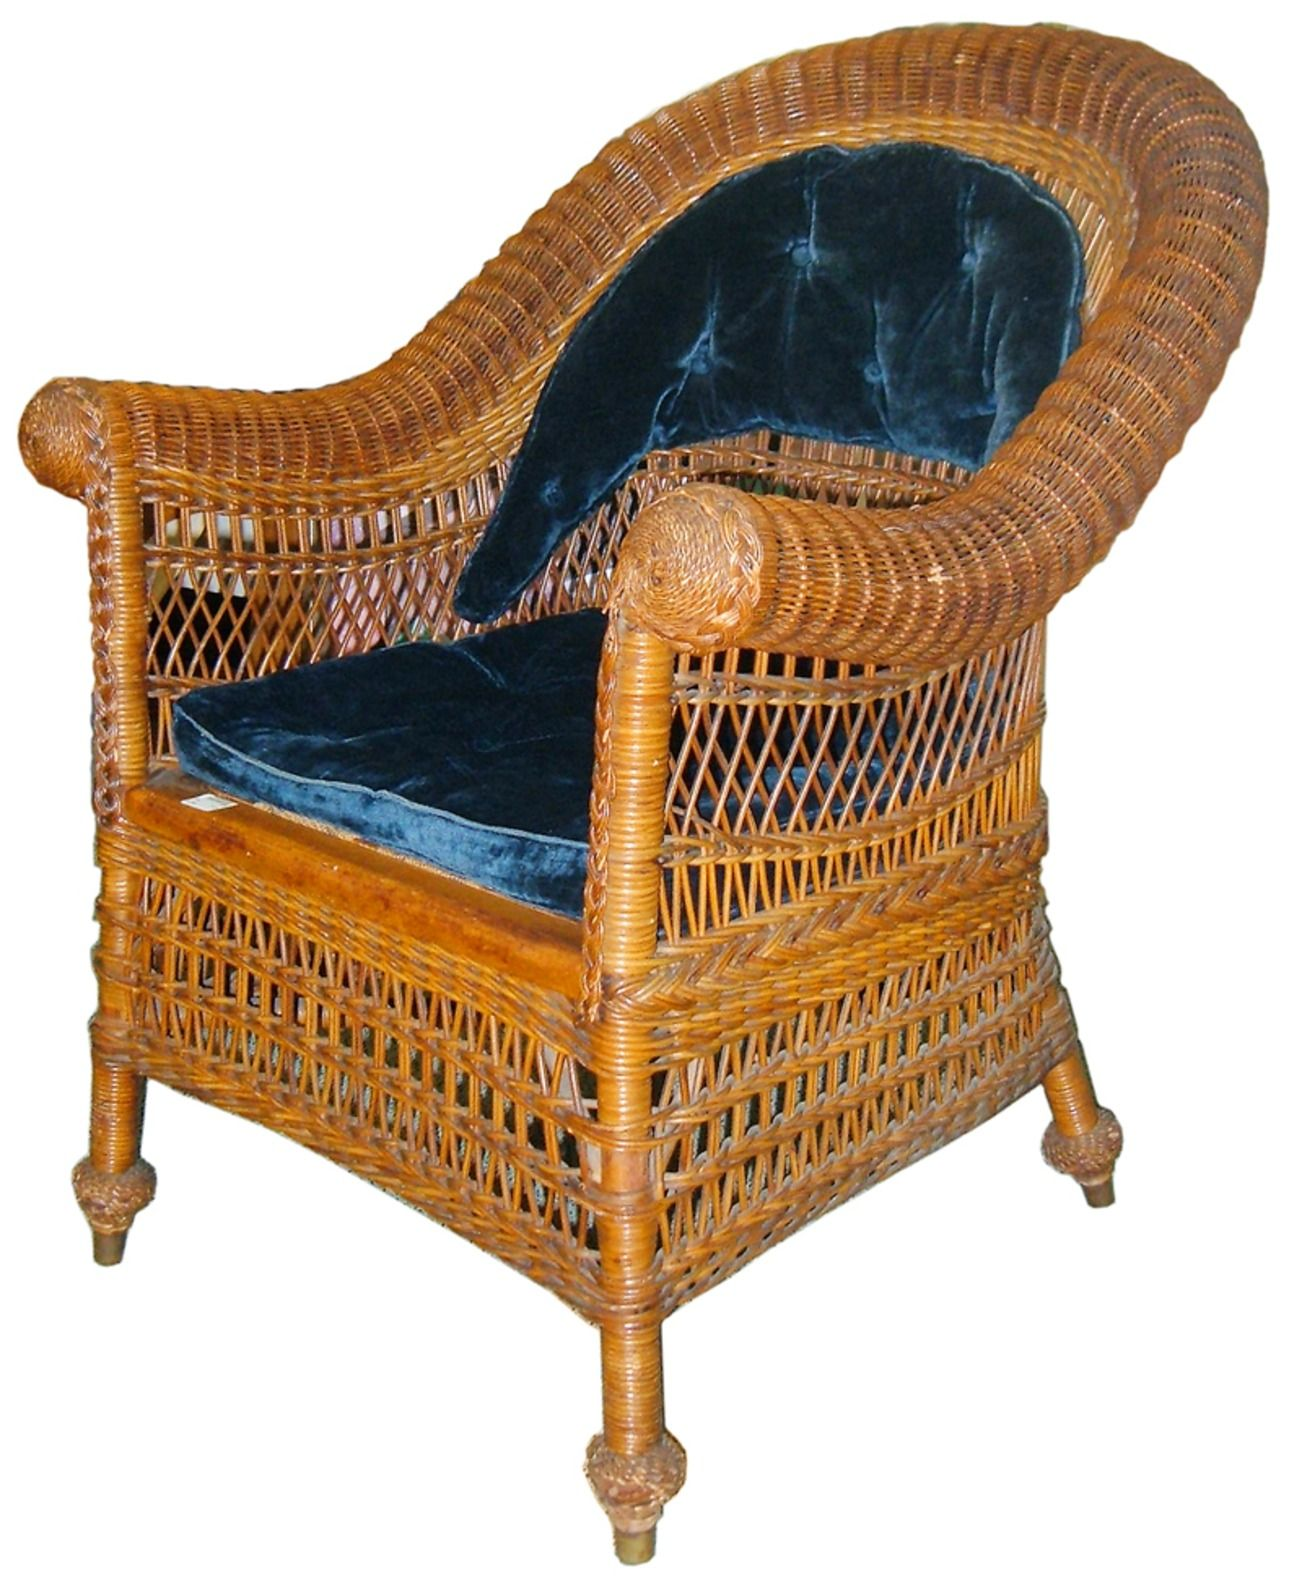 Jean McClelland: Antique Wicker Can Be Identified By Their Wood Frames